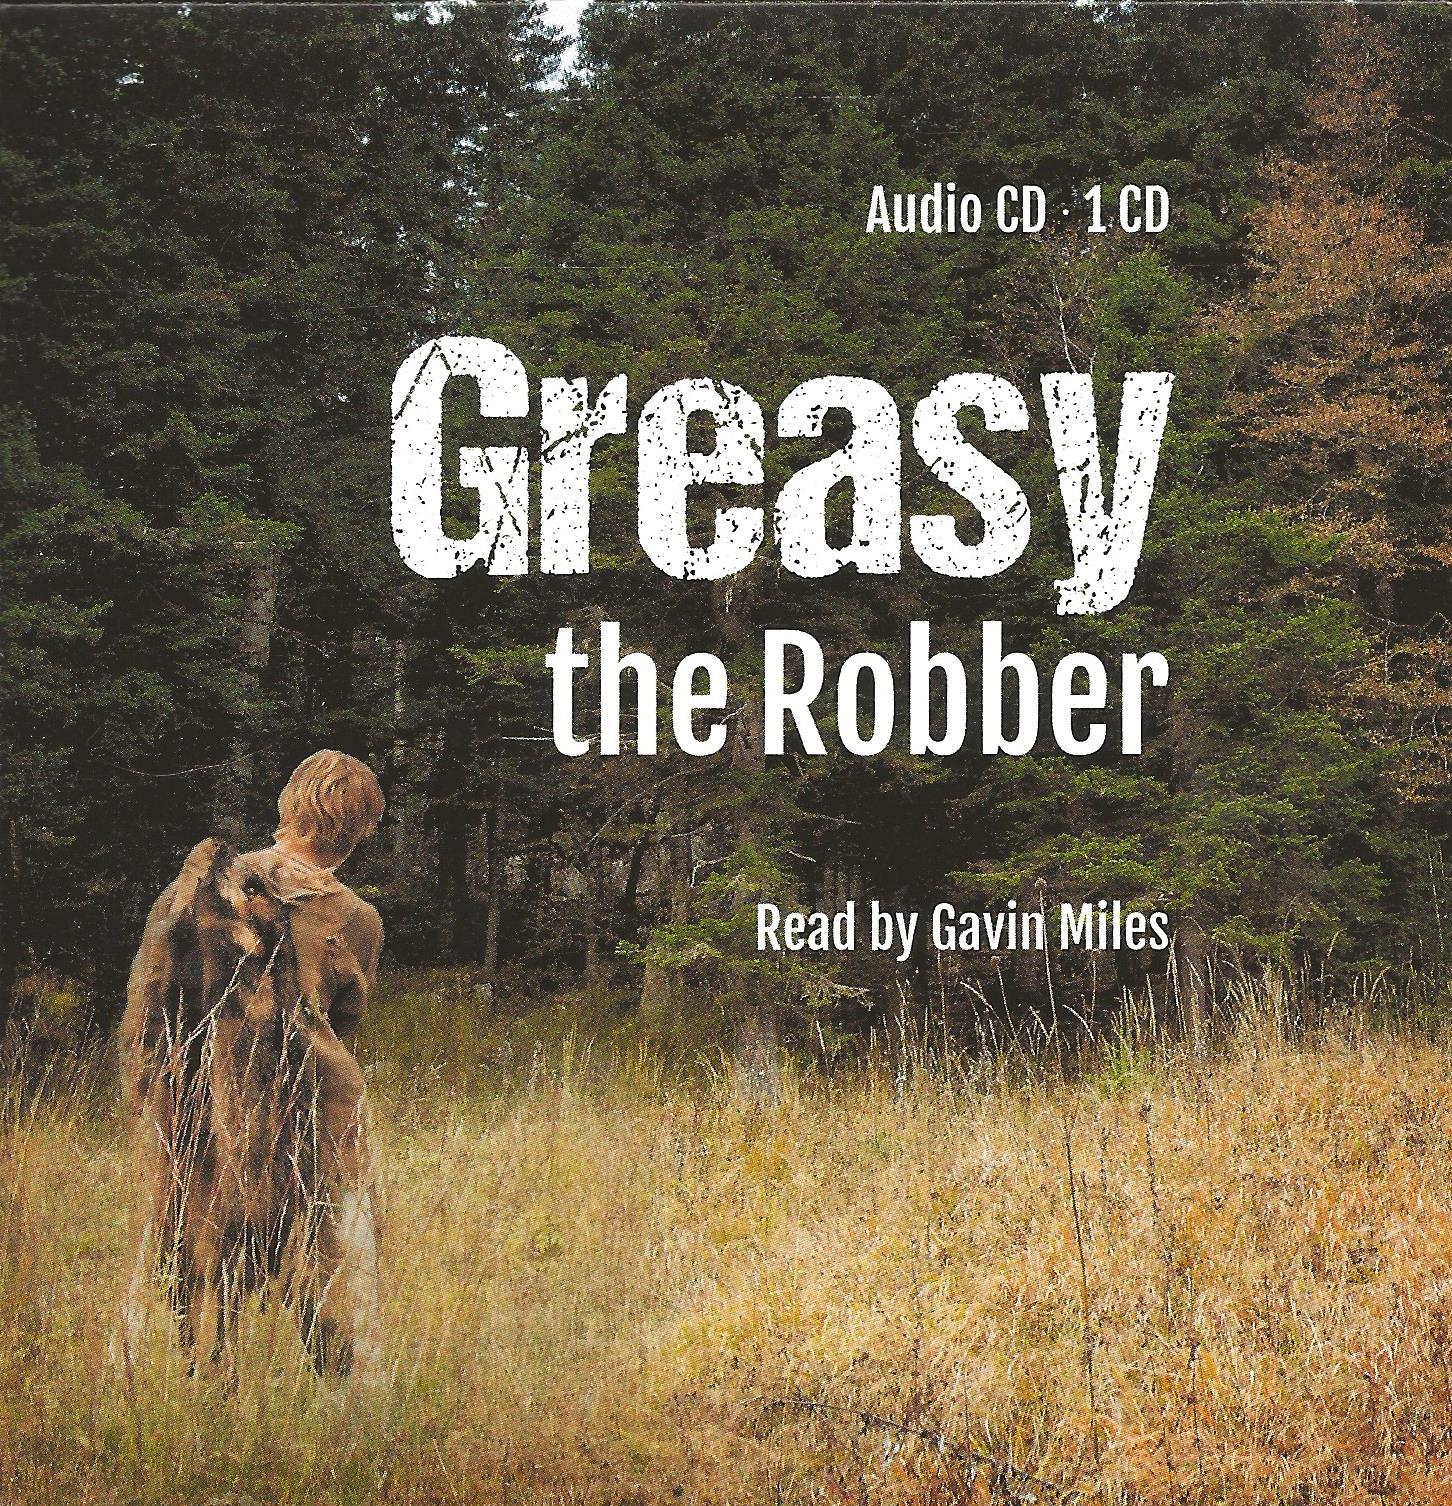 GREASY THE ROBBER Read by Gavin Miles